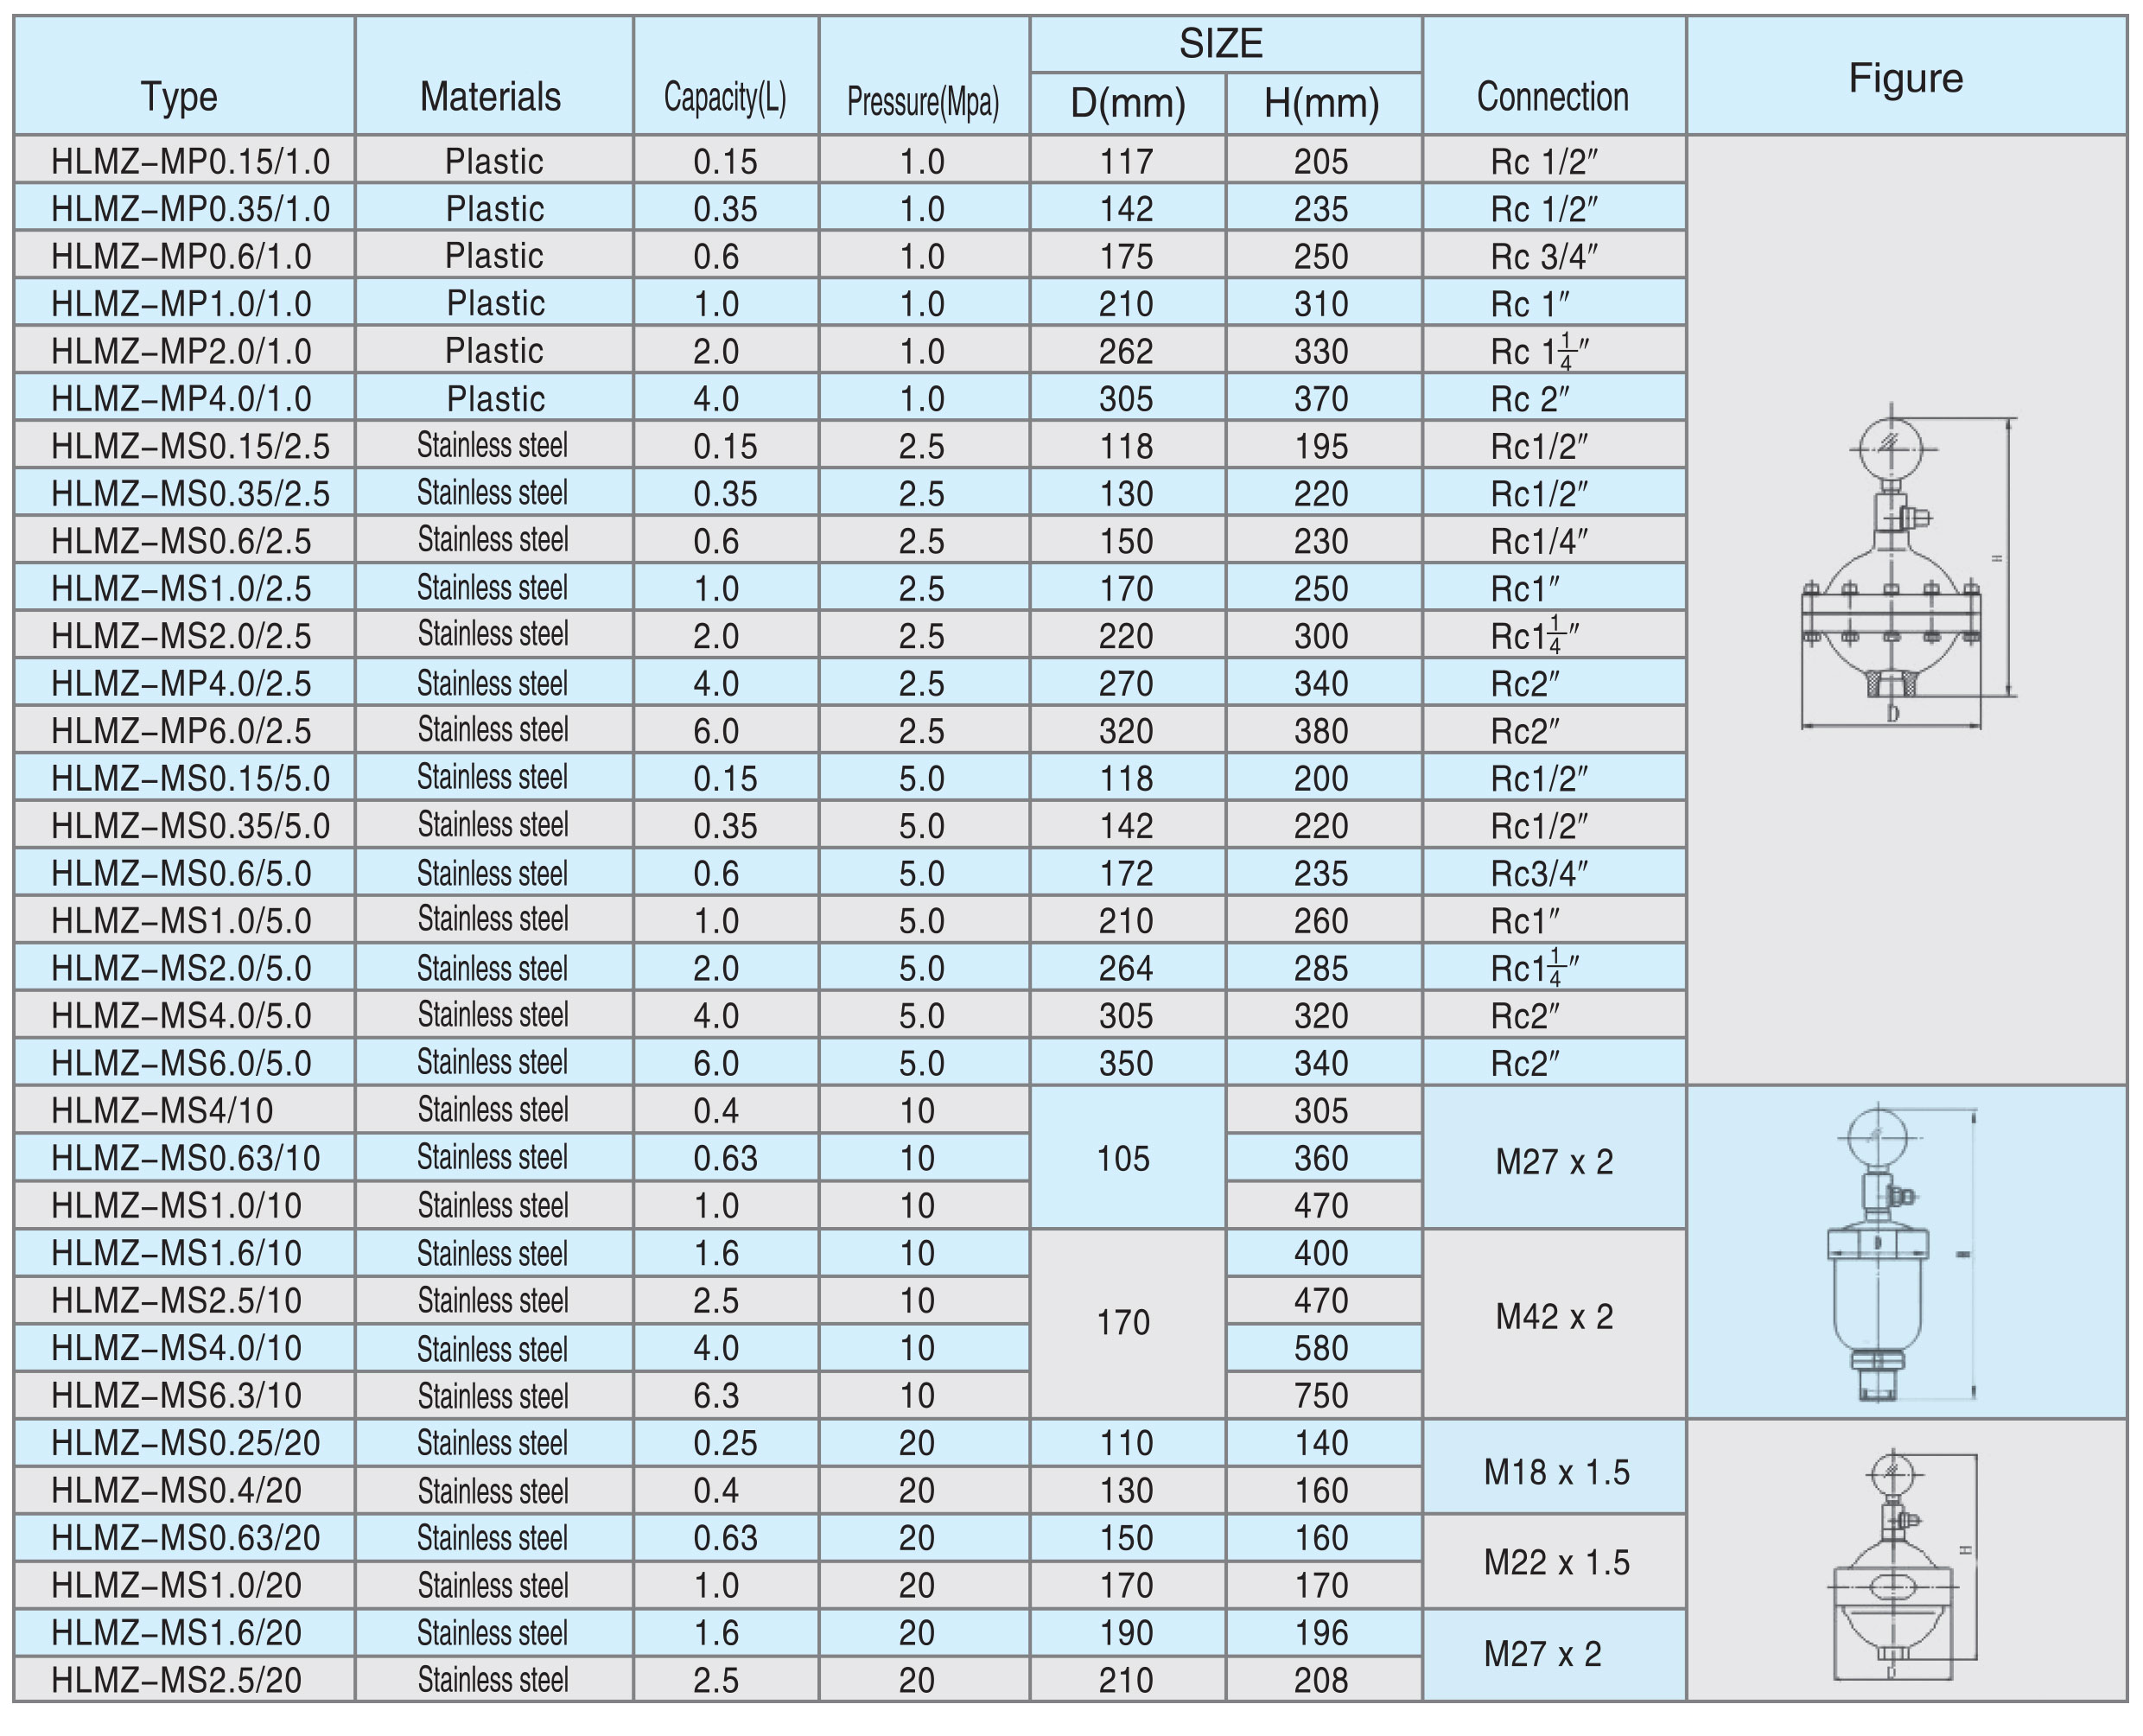 pulsation damper sizing table